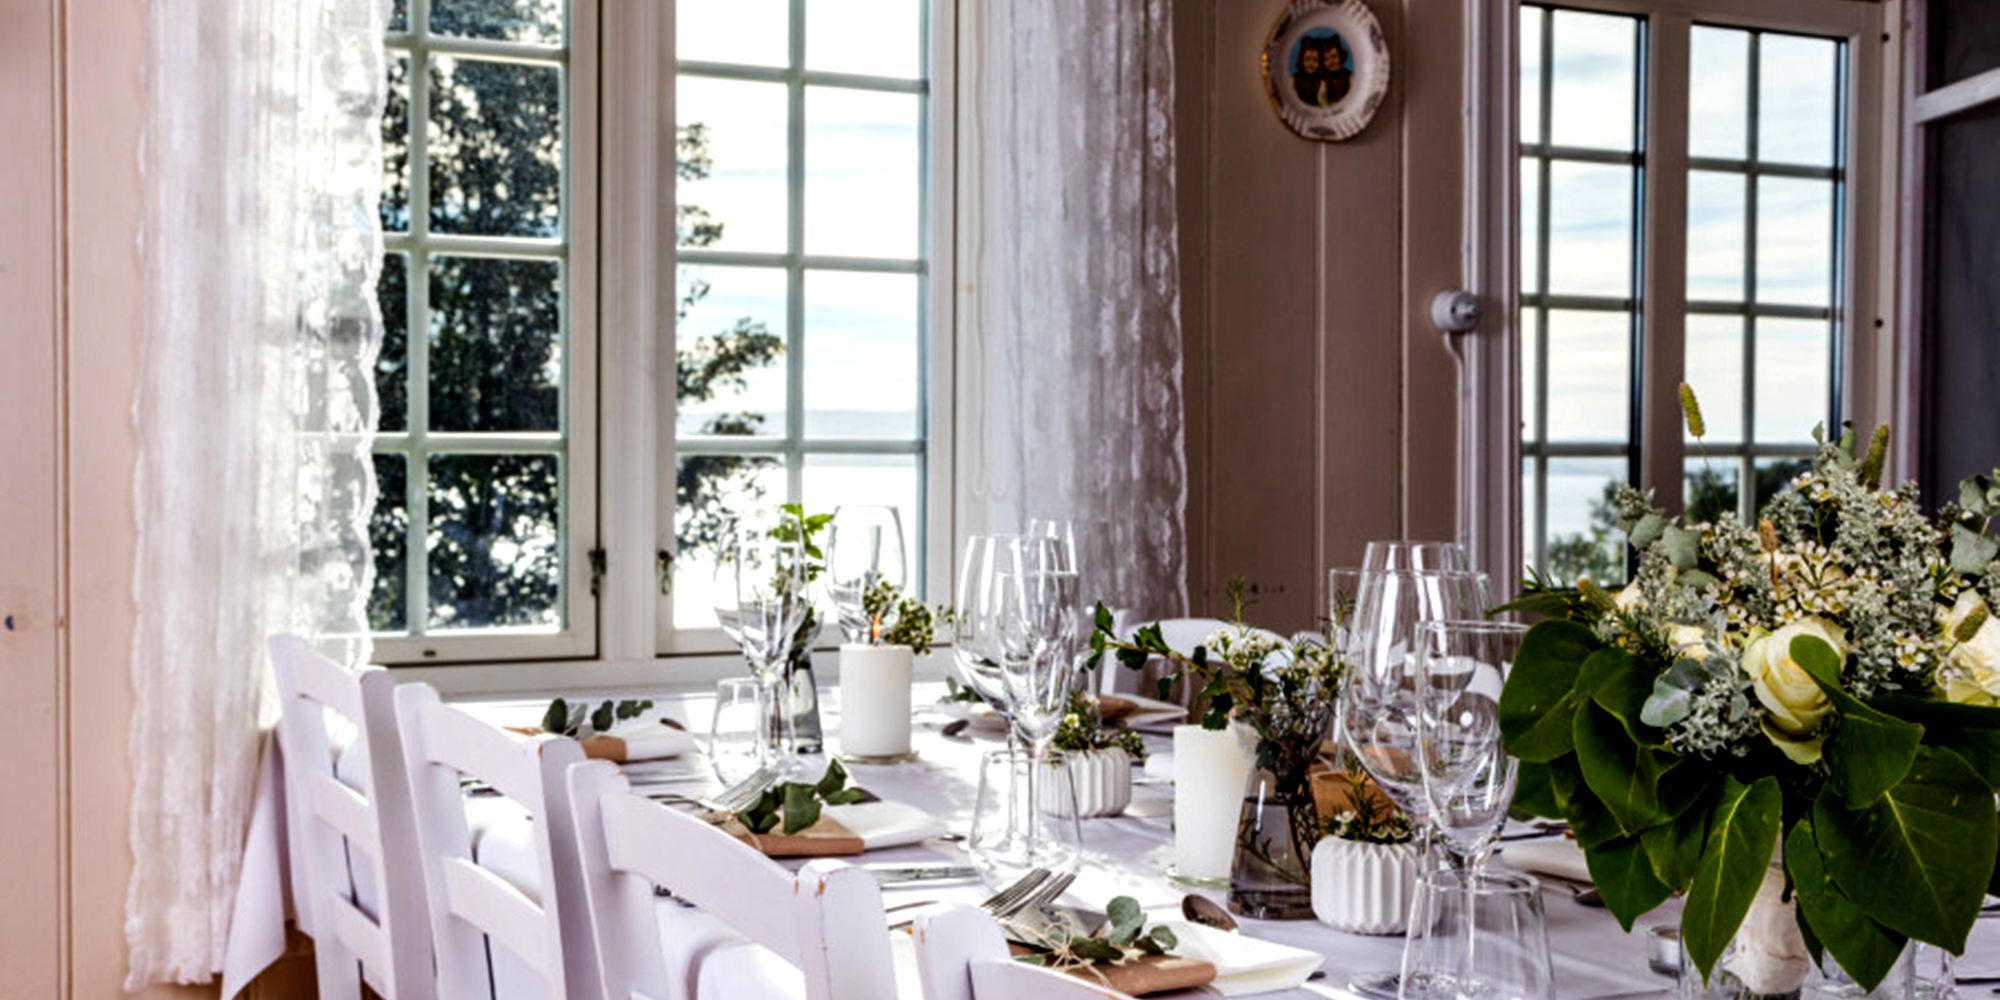 Husfrua Country Farm Hotel - table set for a party. Copyright: Husfrua Gårdshotell